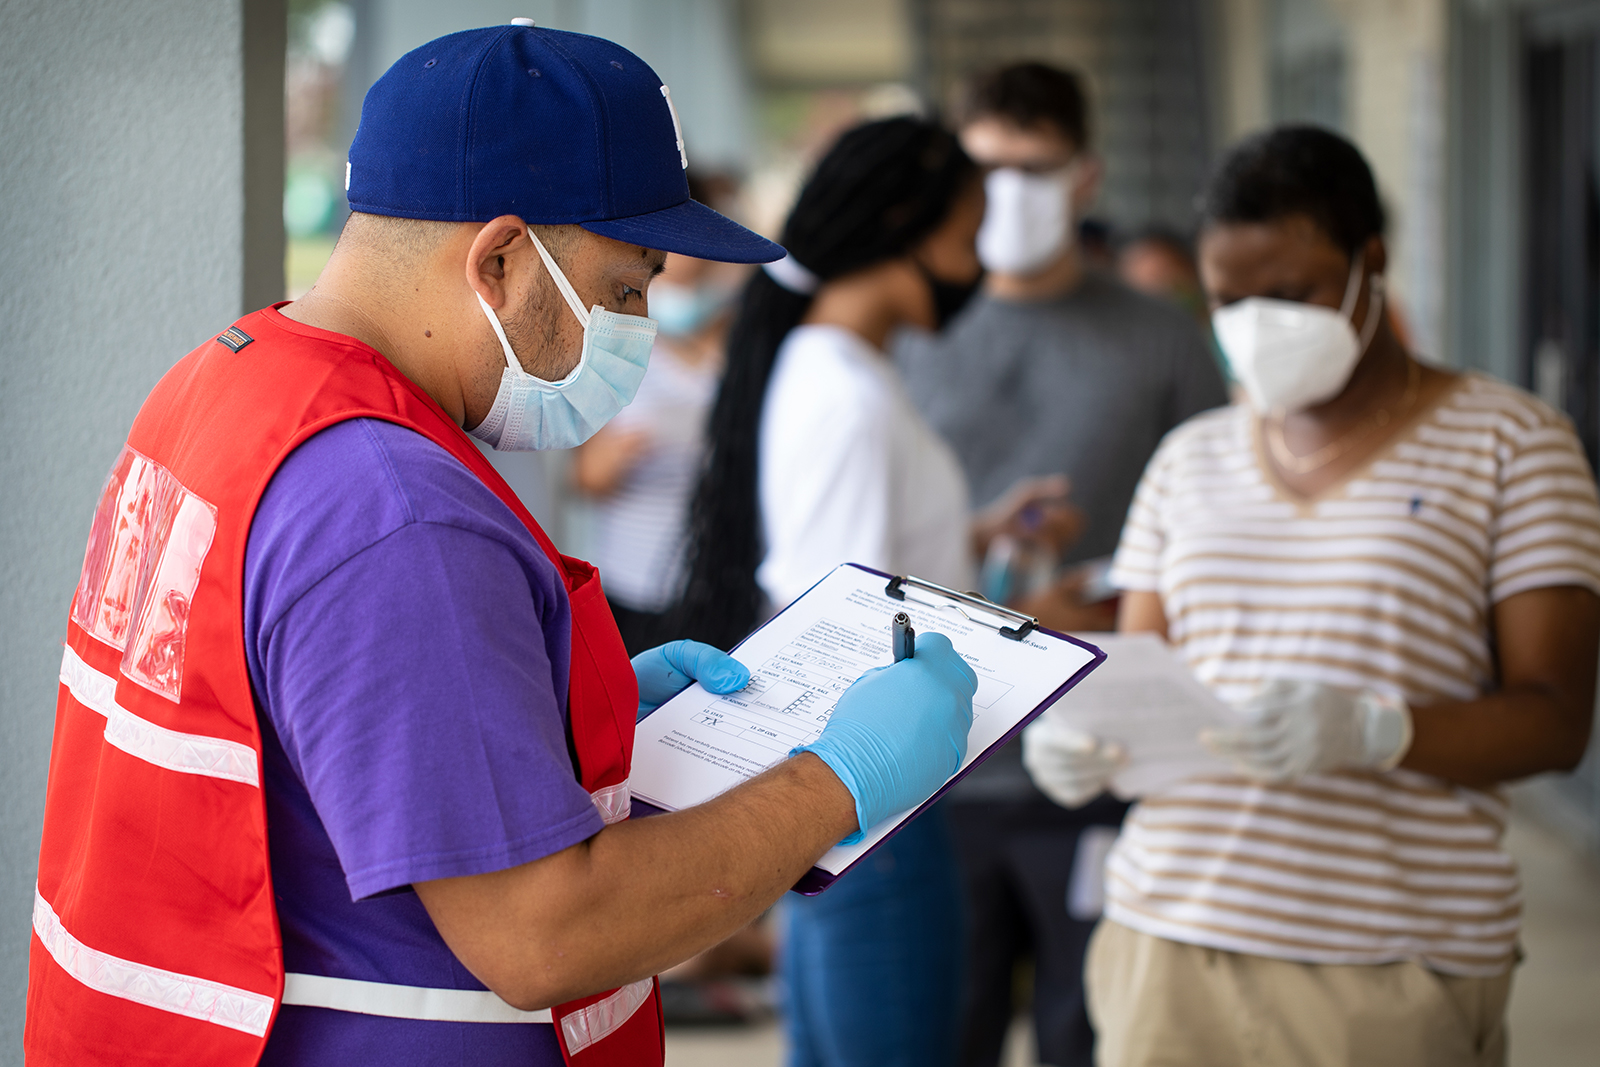 Community outreach specialist Rogelio Bucio collects patient information as they wait in line at a walk up Covid-19 testing site on June 27, in Dallas, Texas.